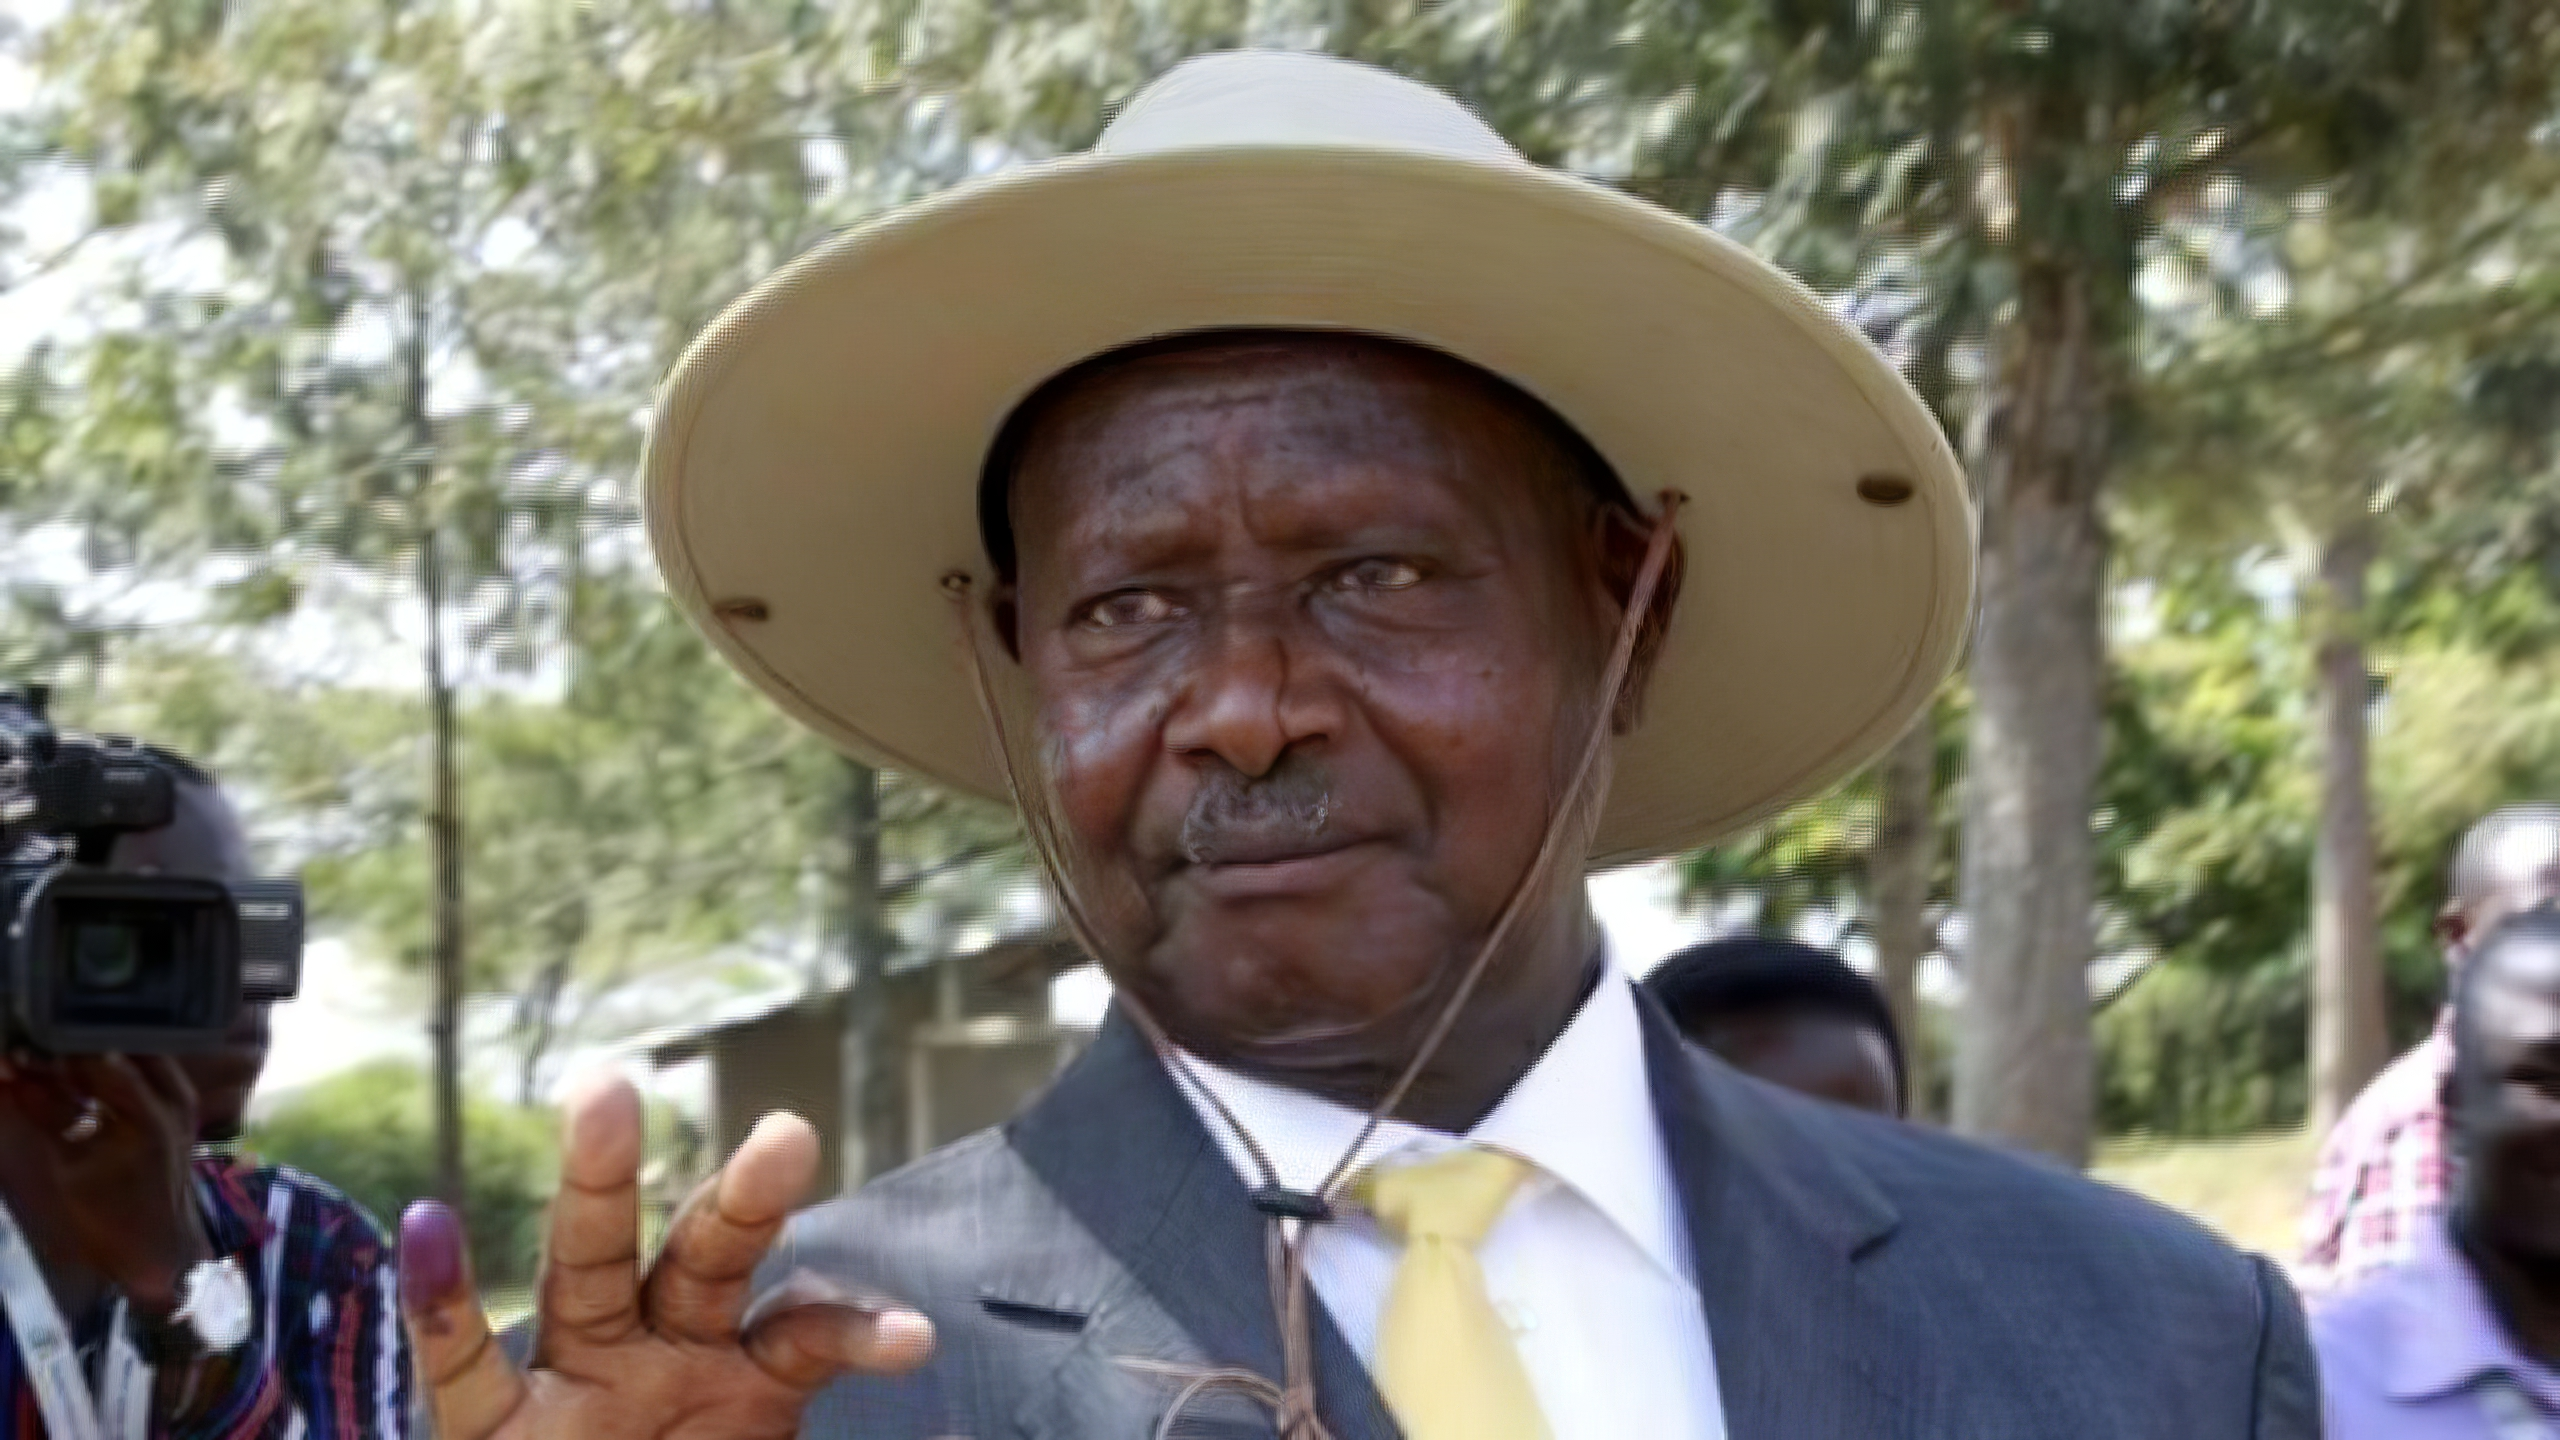 YOWERI MUSEVENI ROBBING UGANDANS USING SOCIAL MEDIA TAX